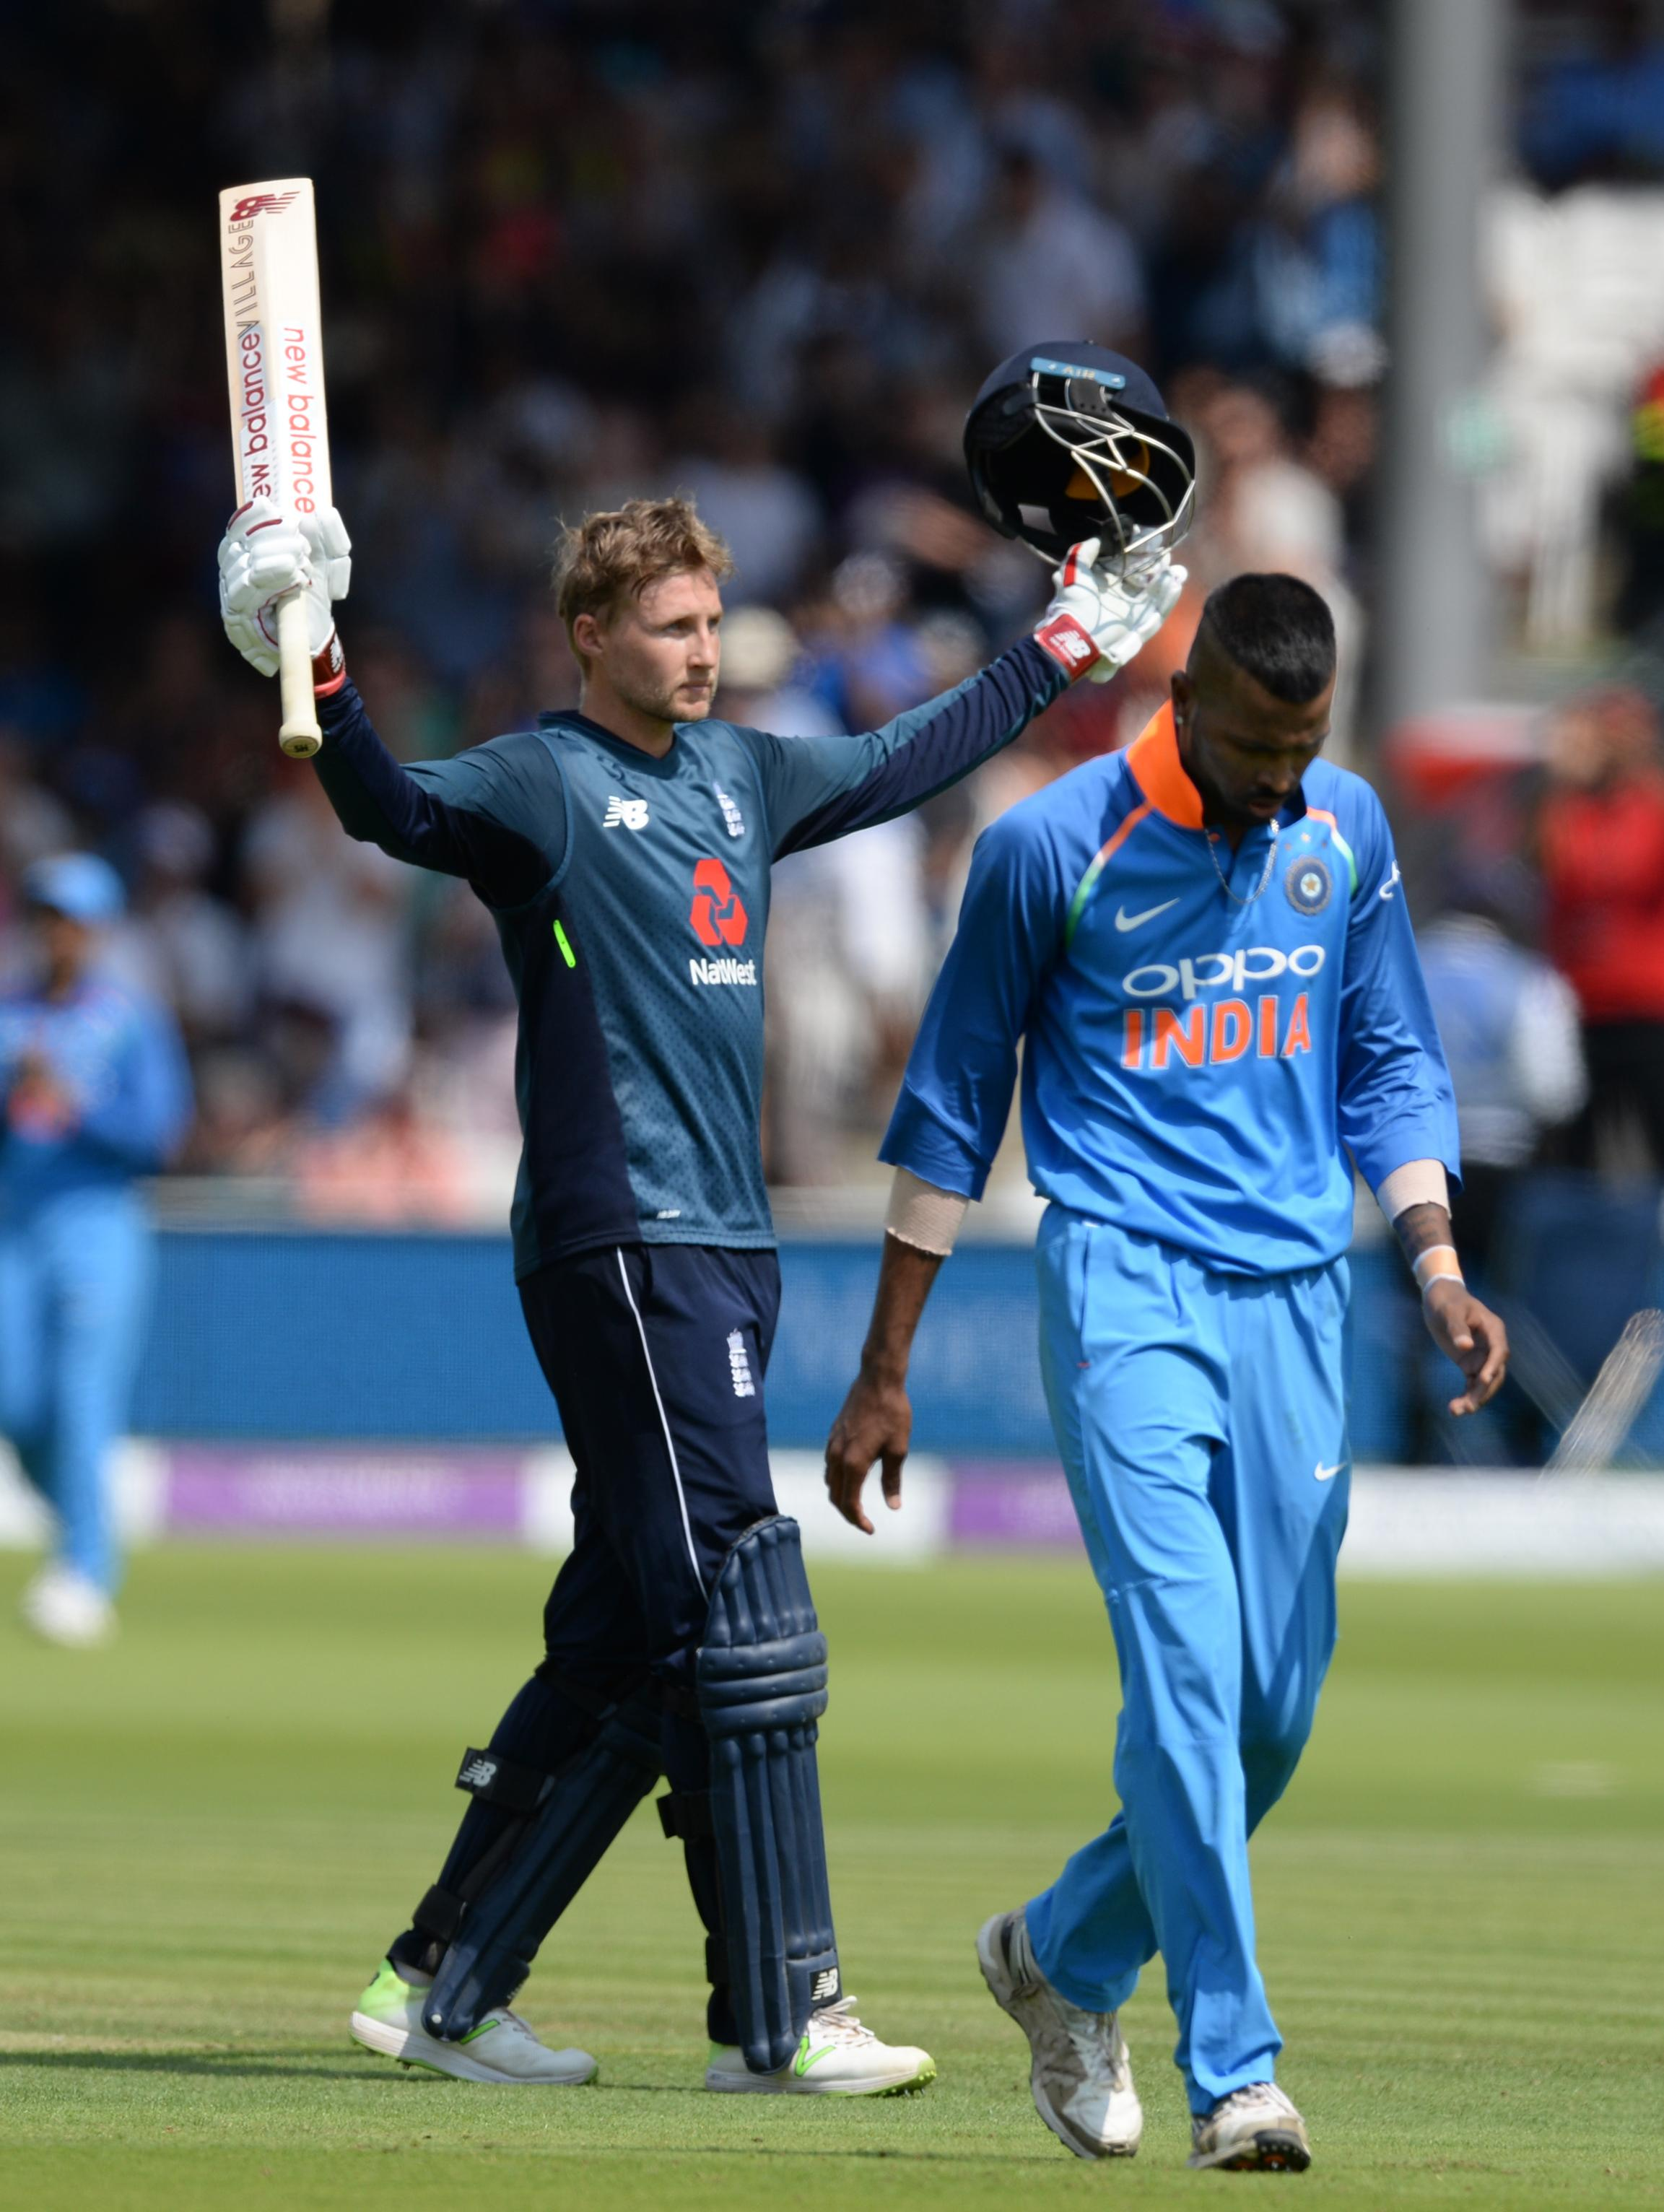 Root's ton helped England set a target of 323